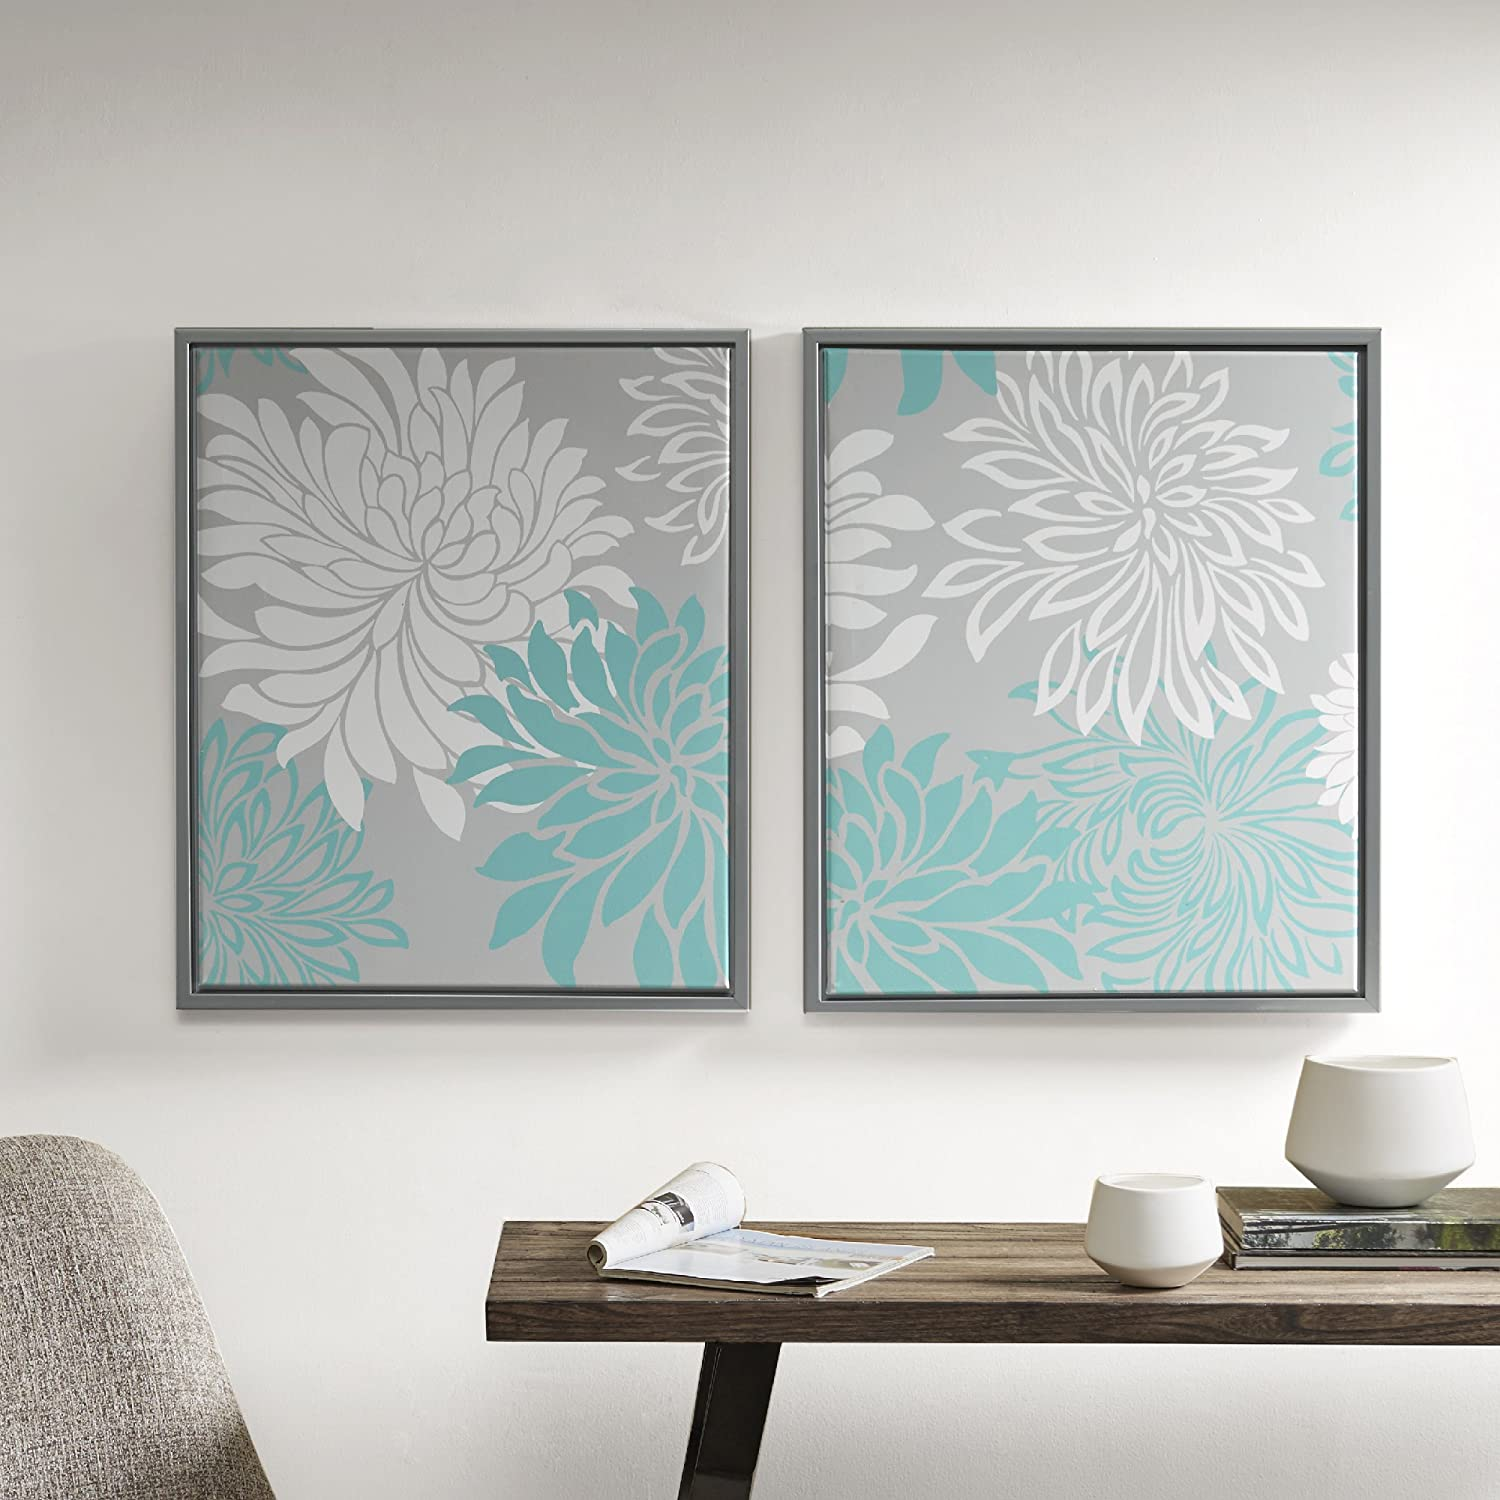 Comfort Spaces Enya Wall Art - Canvas with Silver Frame Painting Floral Modern Home Decor - 2 Piece Set Artwork, 20'' x 24'', bluee, 2 Each